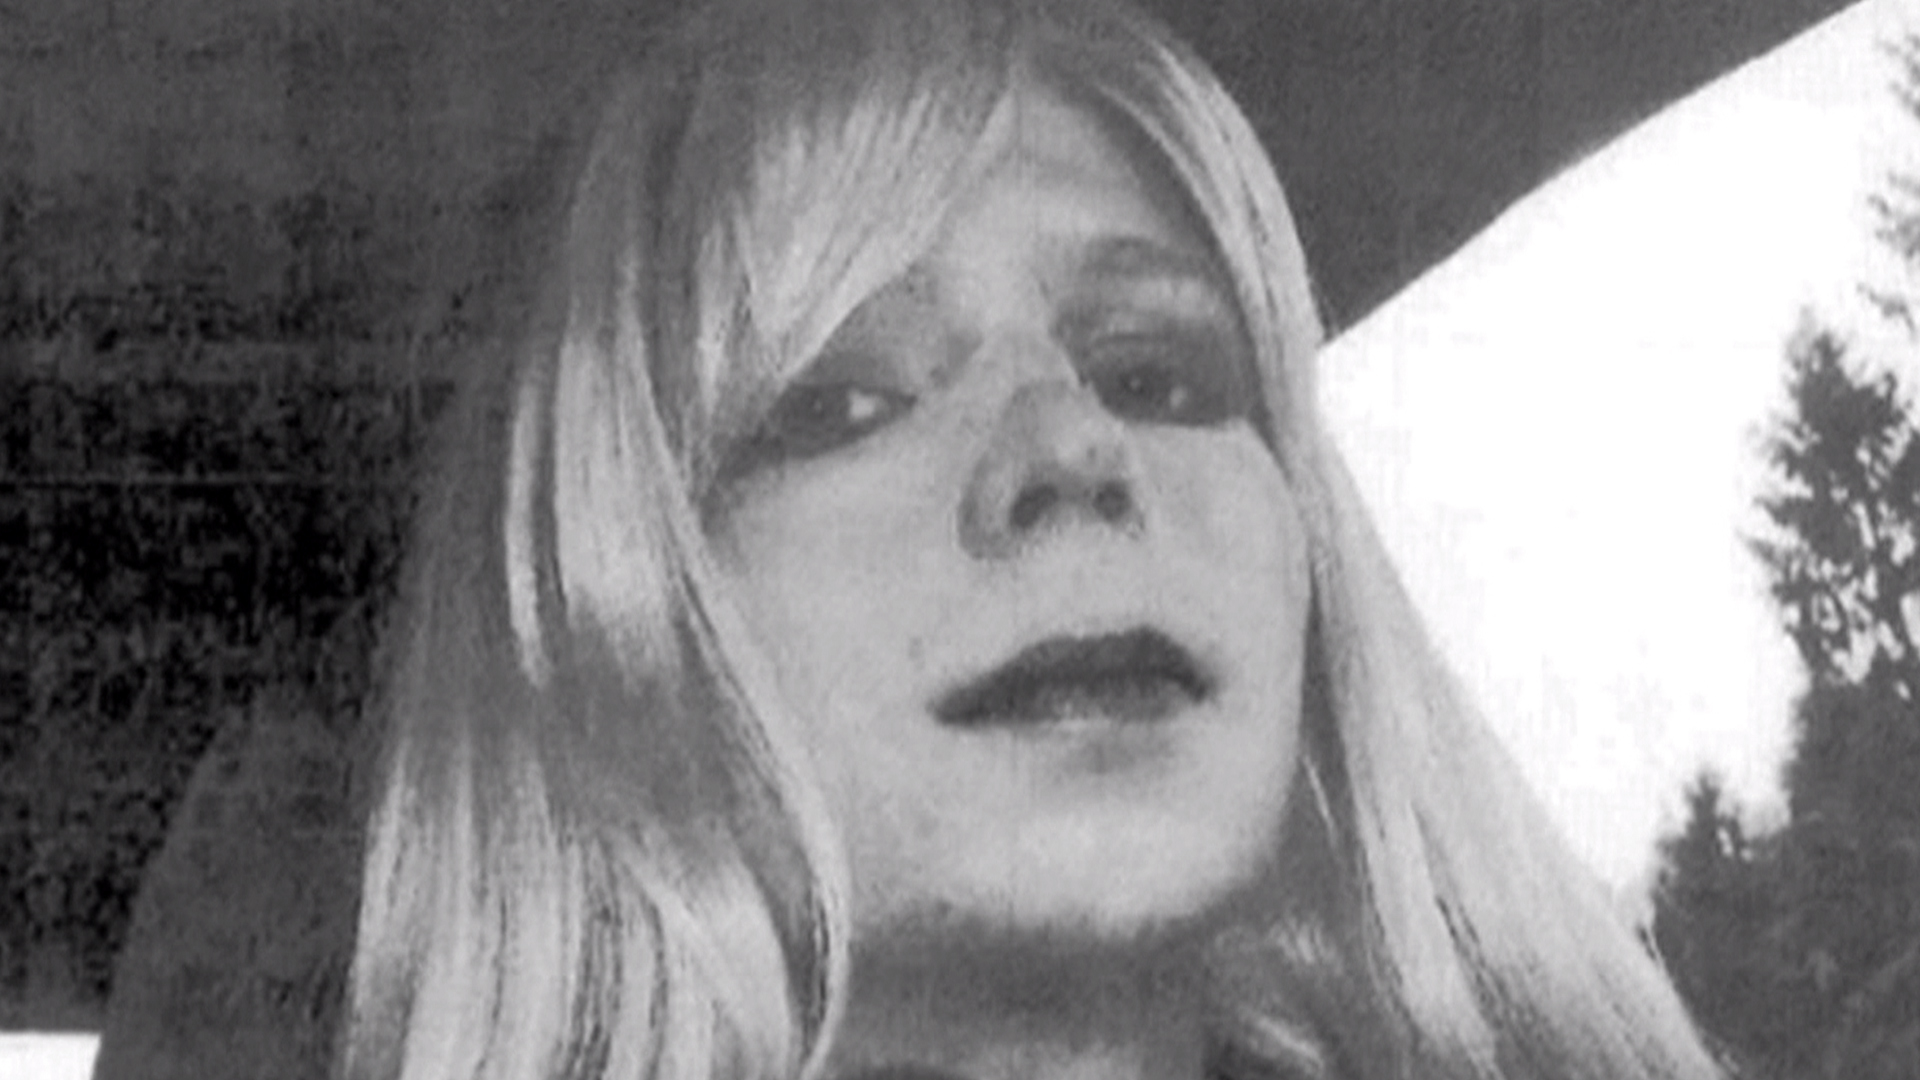 President Obama has commuted the sentence of Army leaker Chelsea Manning